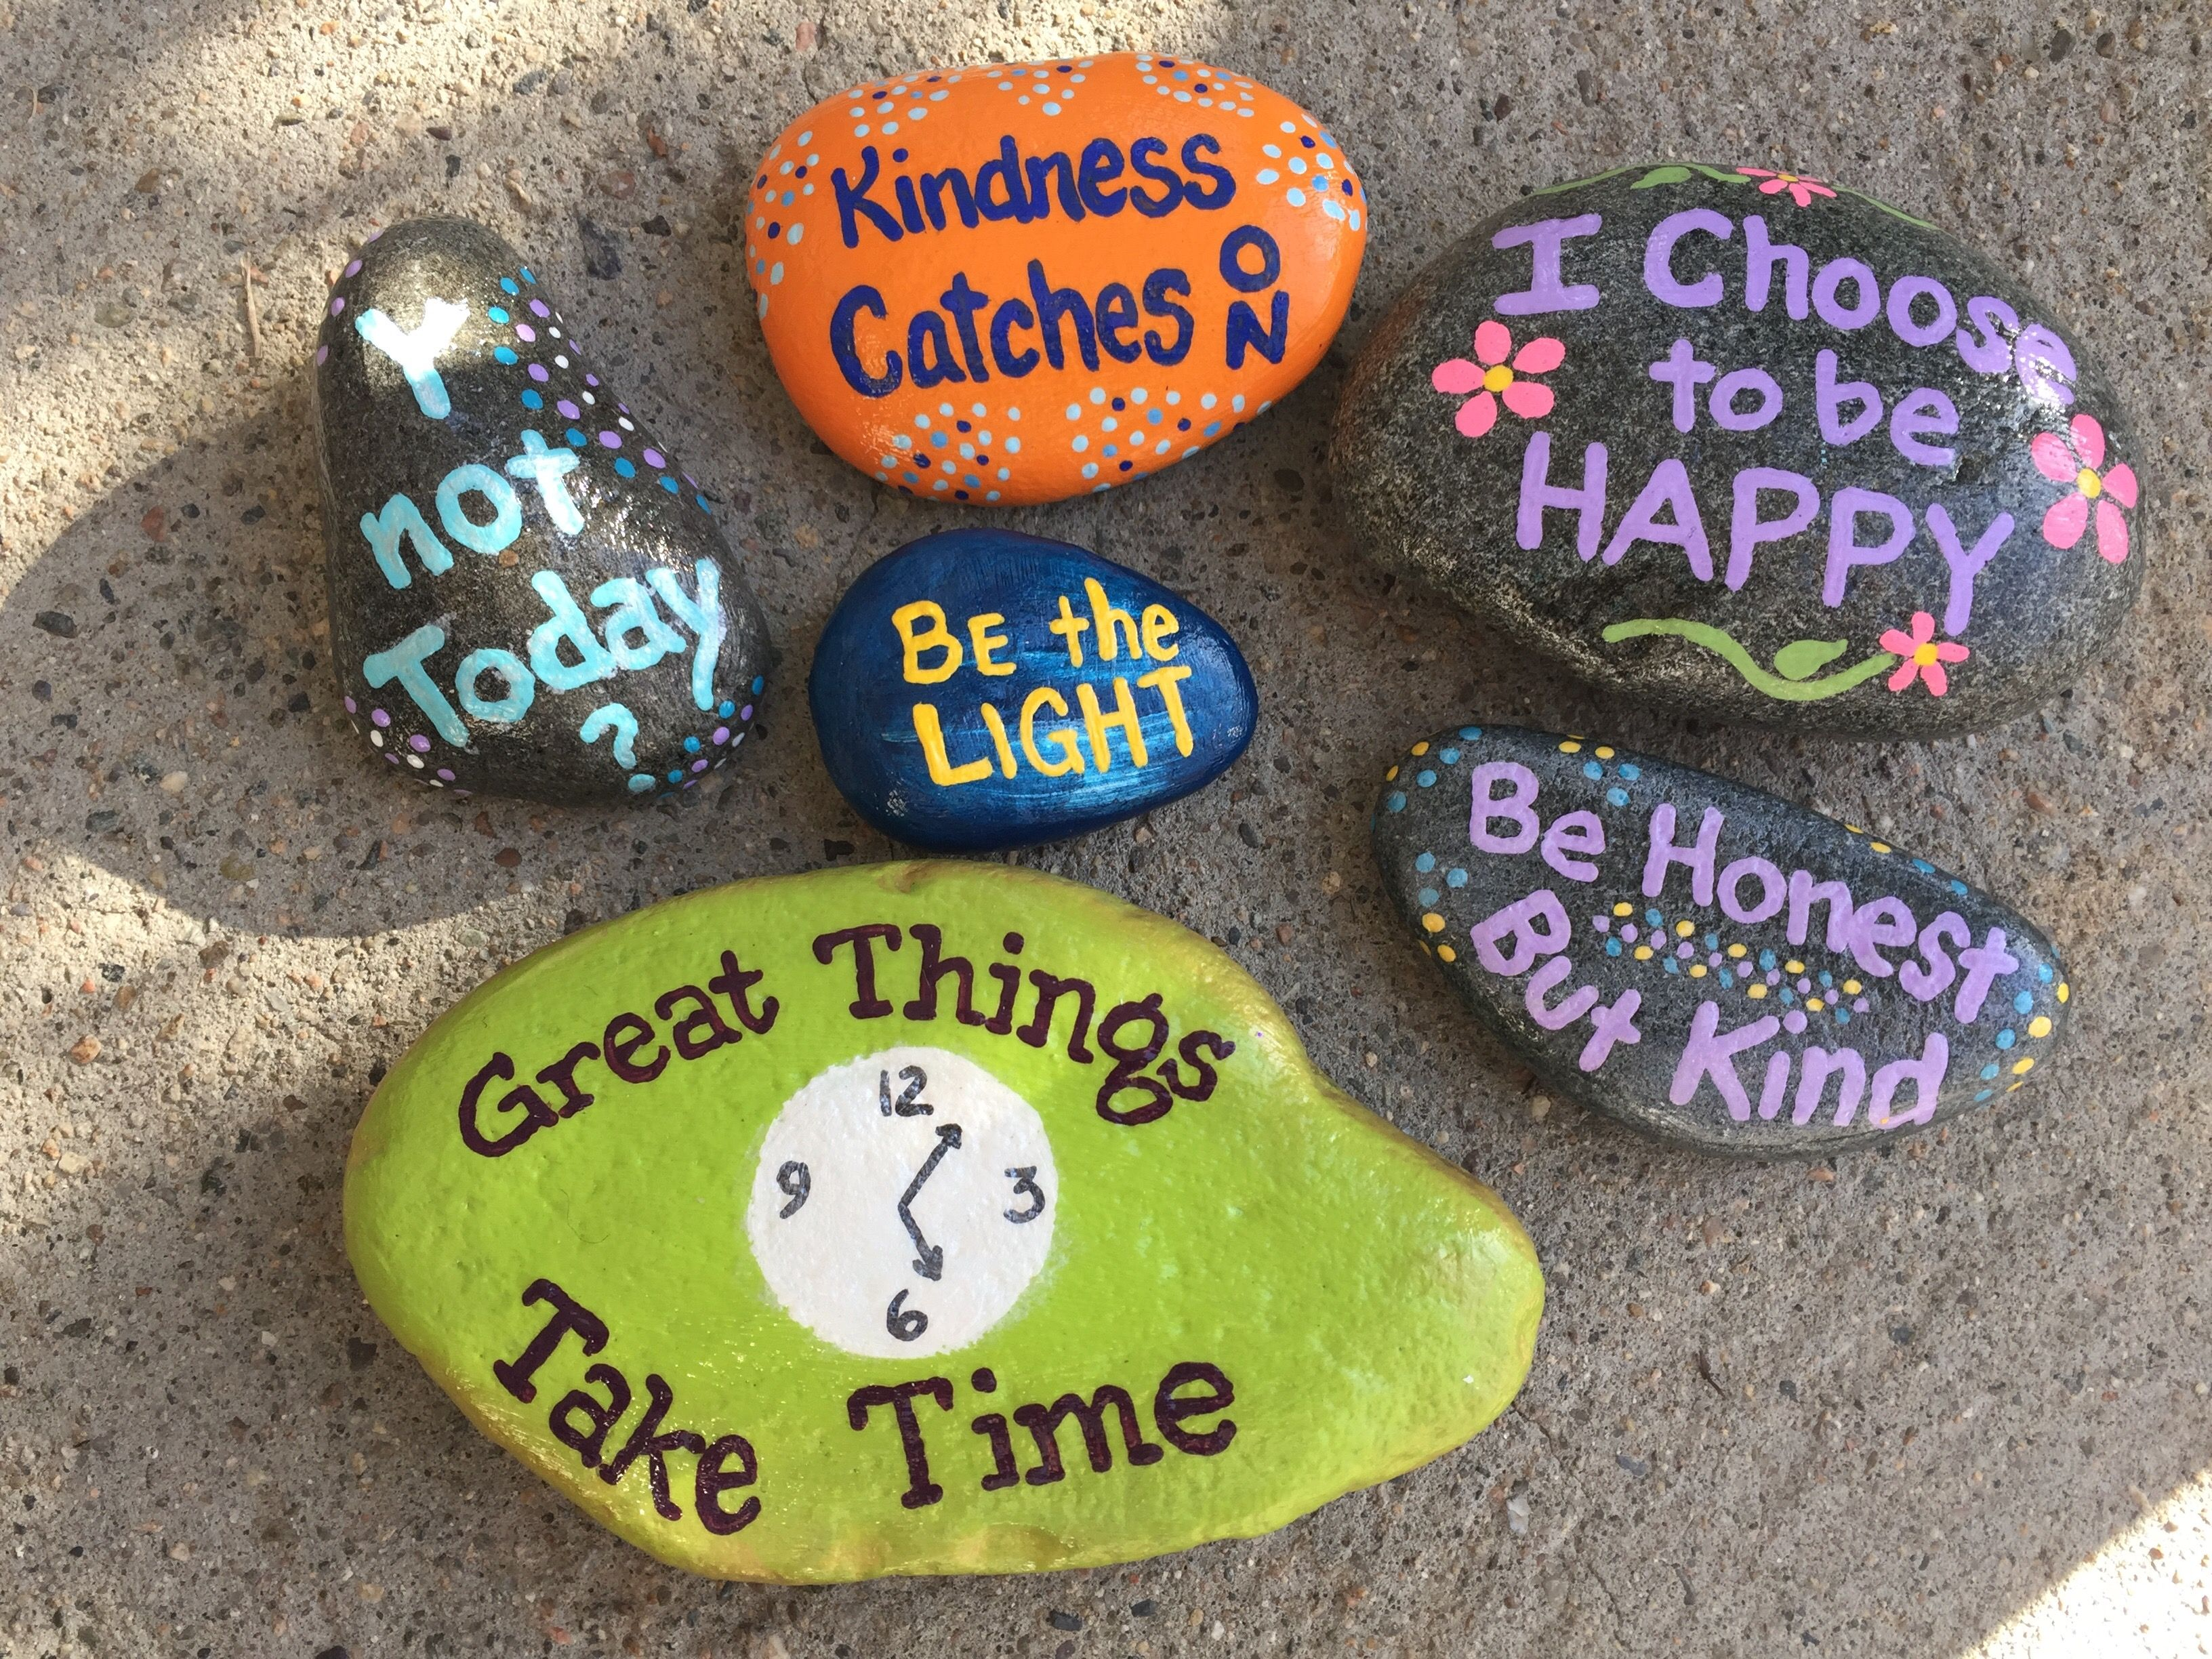 Hand painted rocks by Caroline. The Kindness Rocks Project.